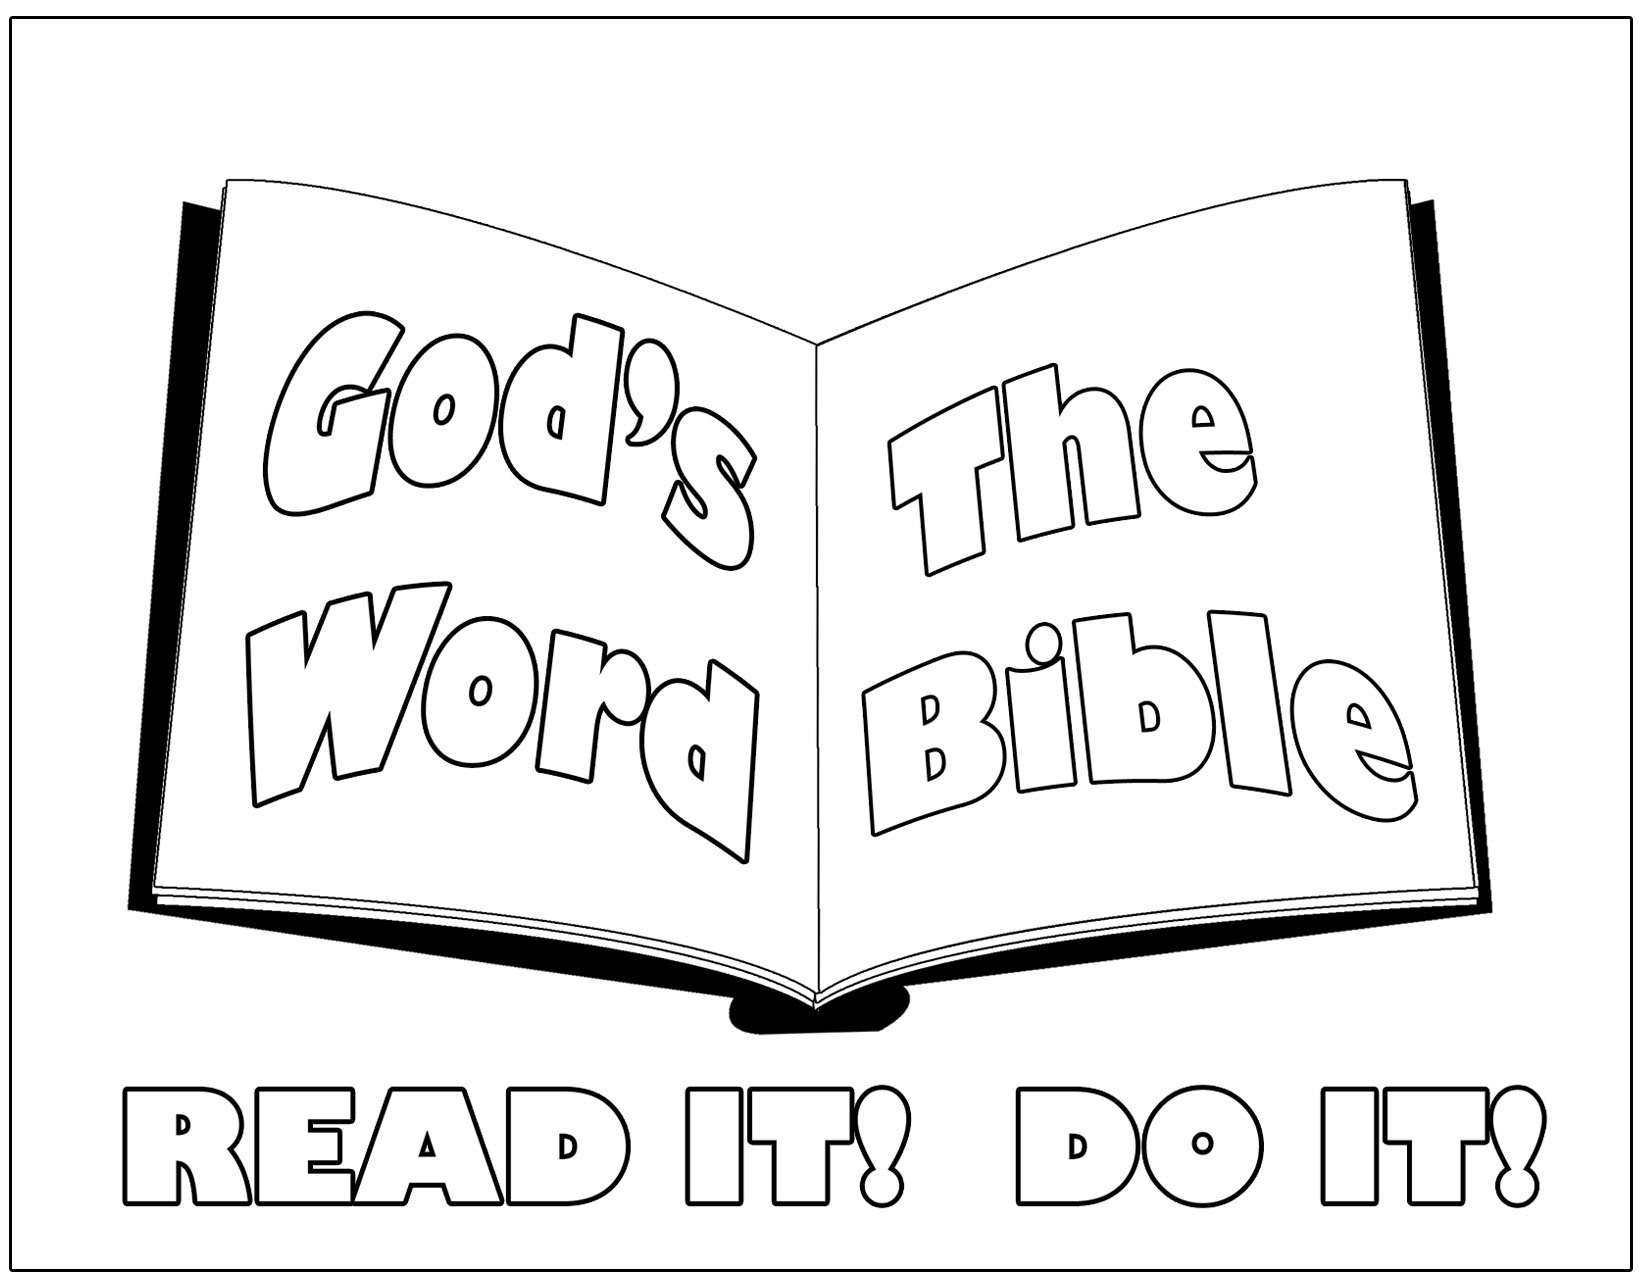 Free coloring pages for reading - Free Bible Coloring Pages